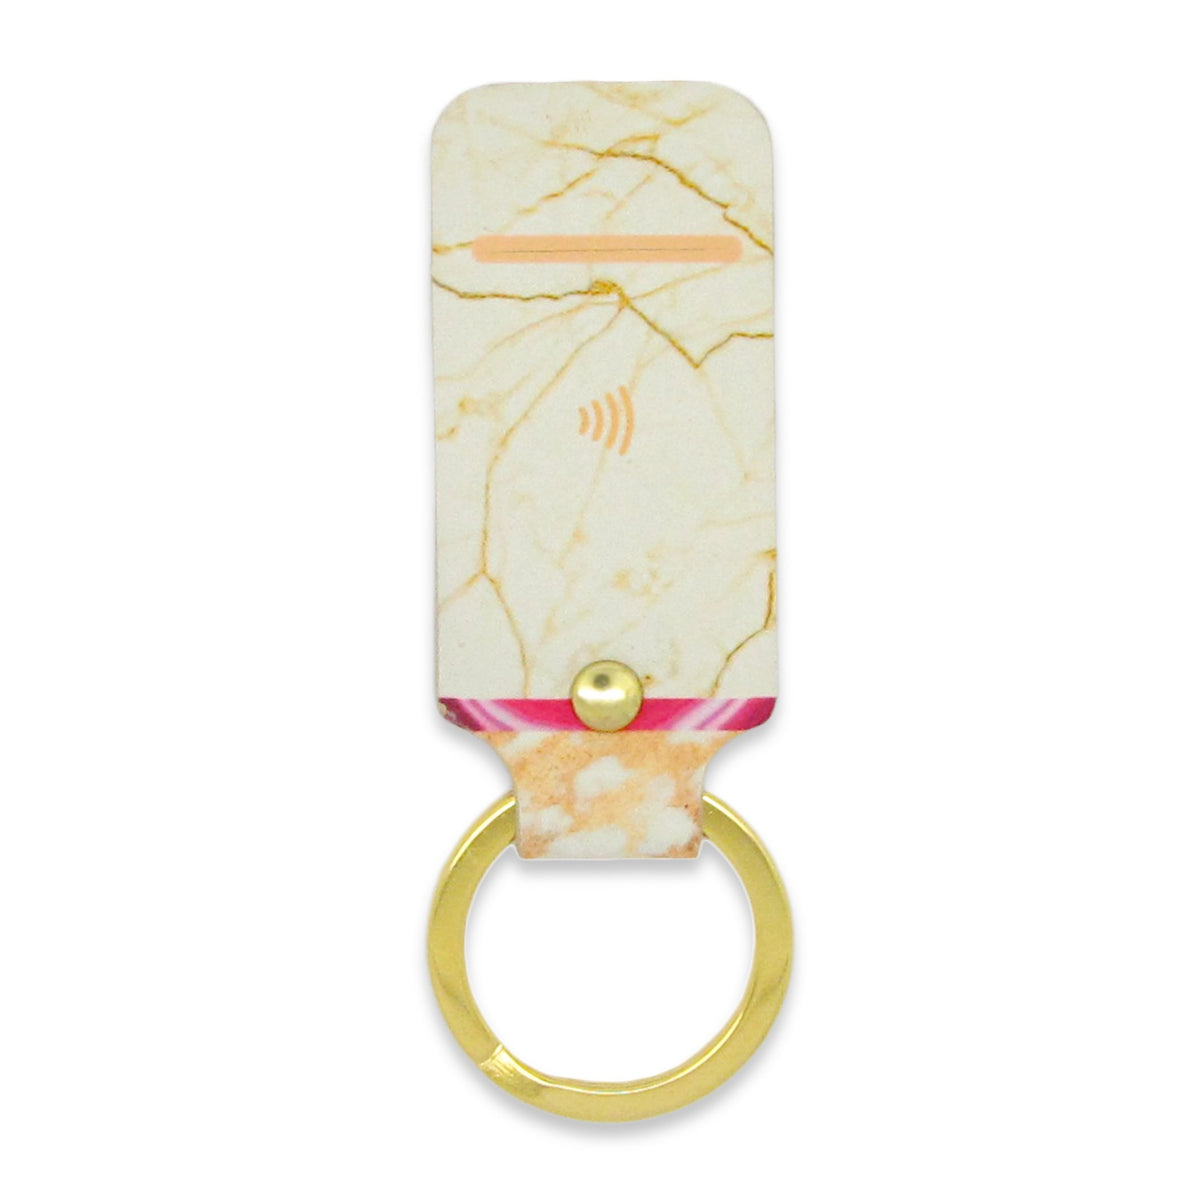 Leather Contactless Payment Key Fob - White Marble Tovi Sorga With Contactless Payment Chip white